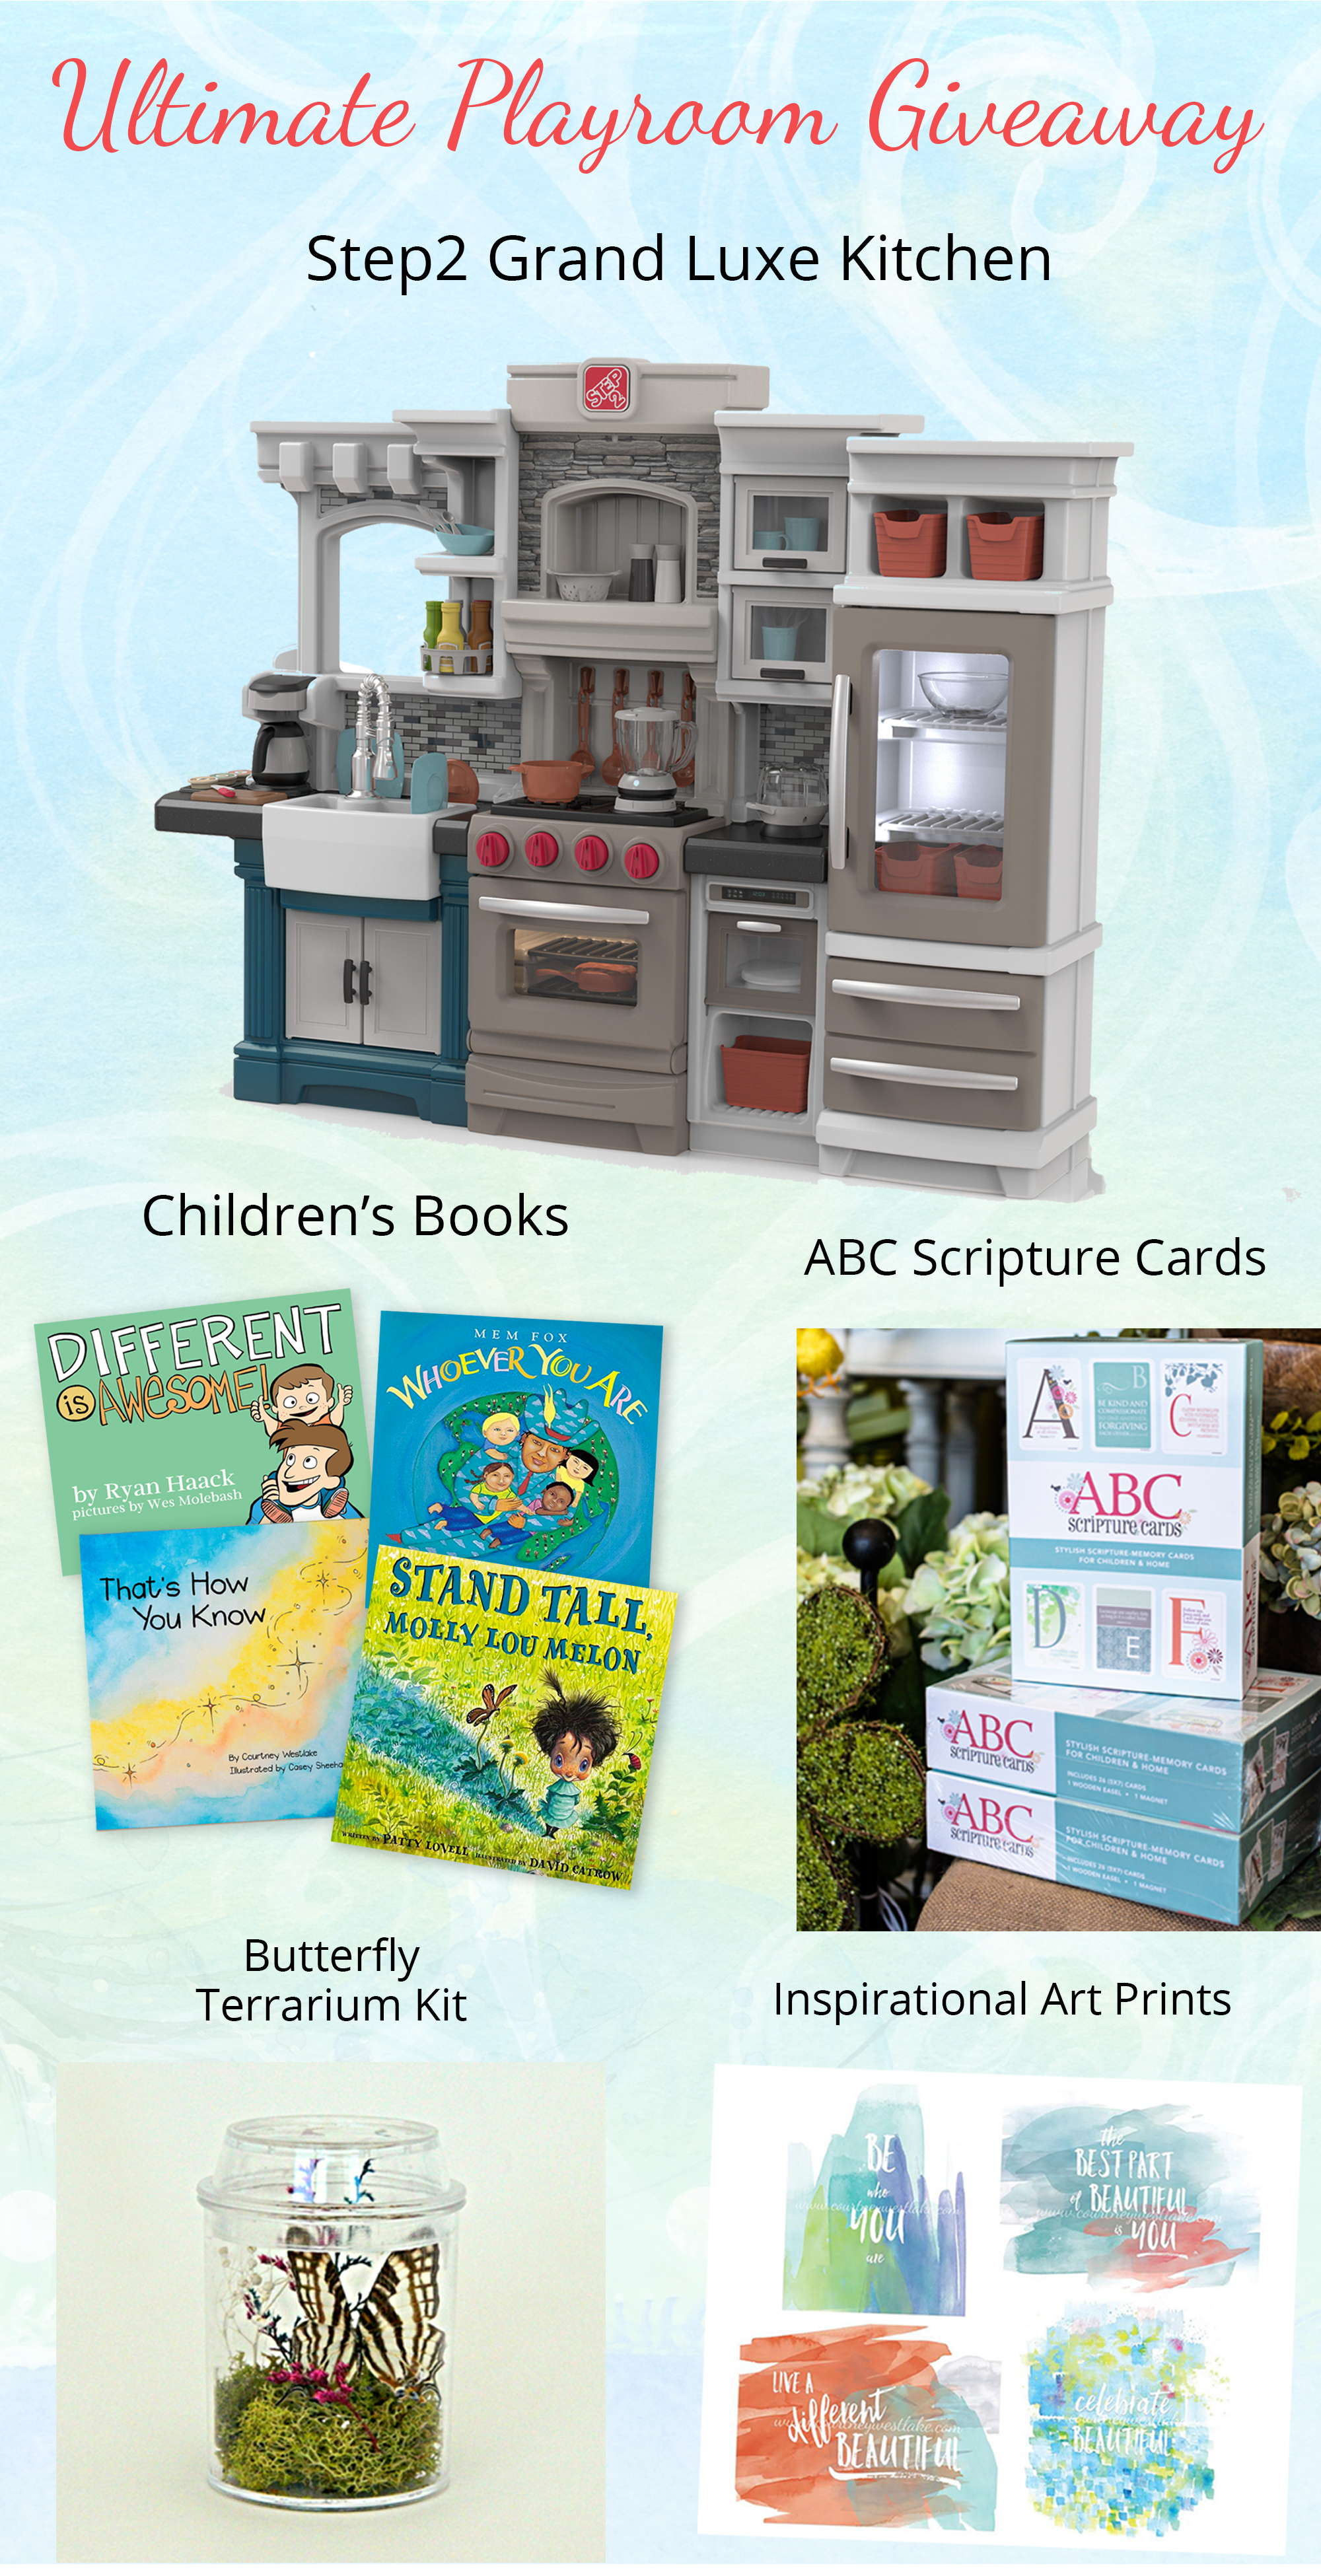 The Big Awesome ULTIMATE Playroom Giveaway!